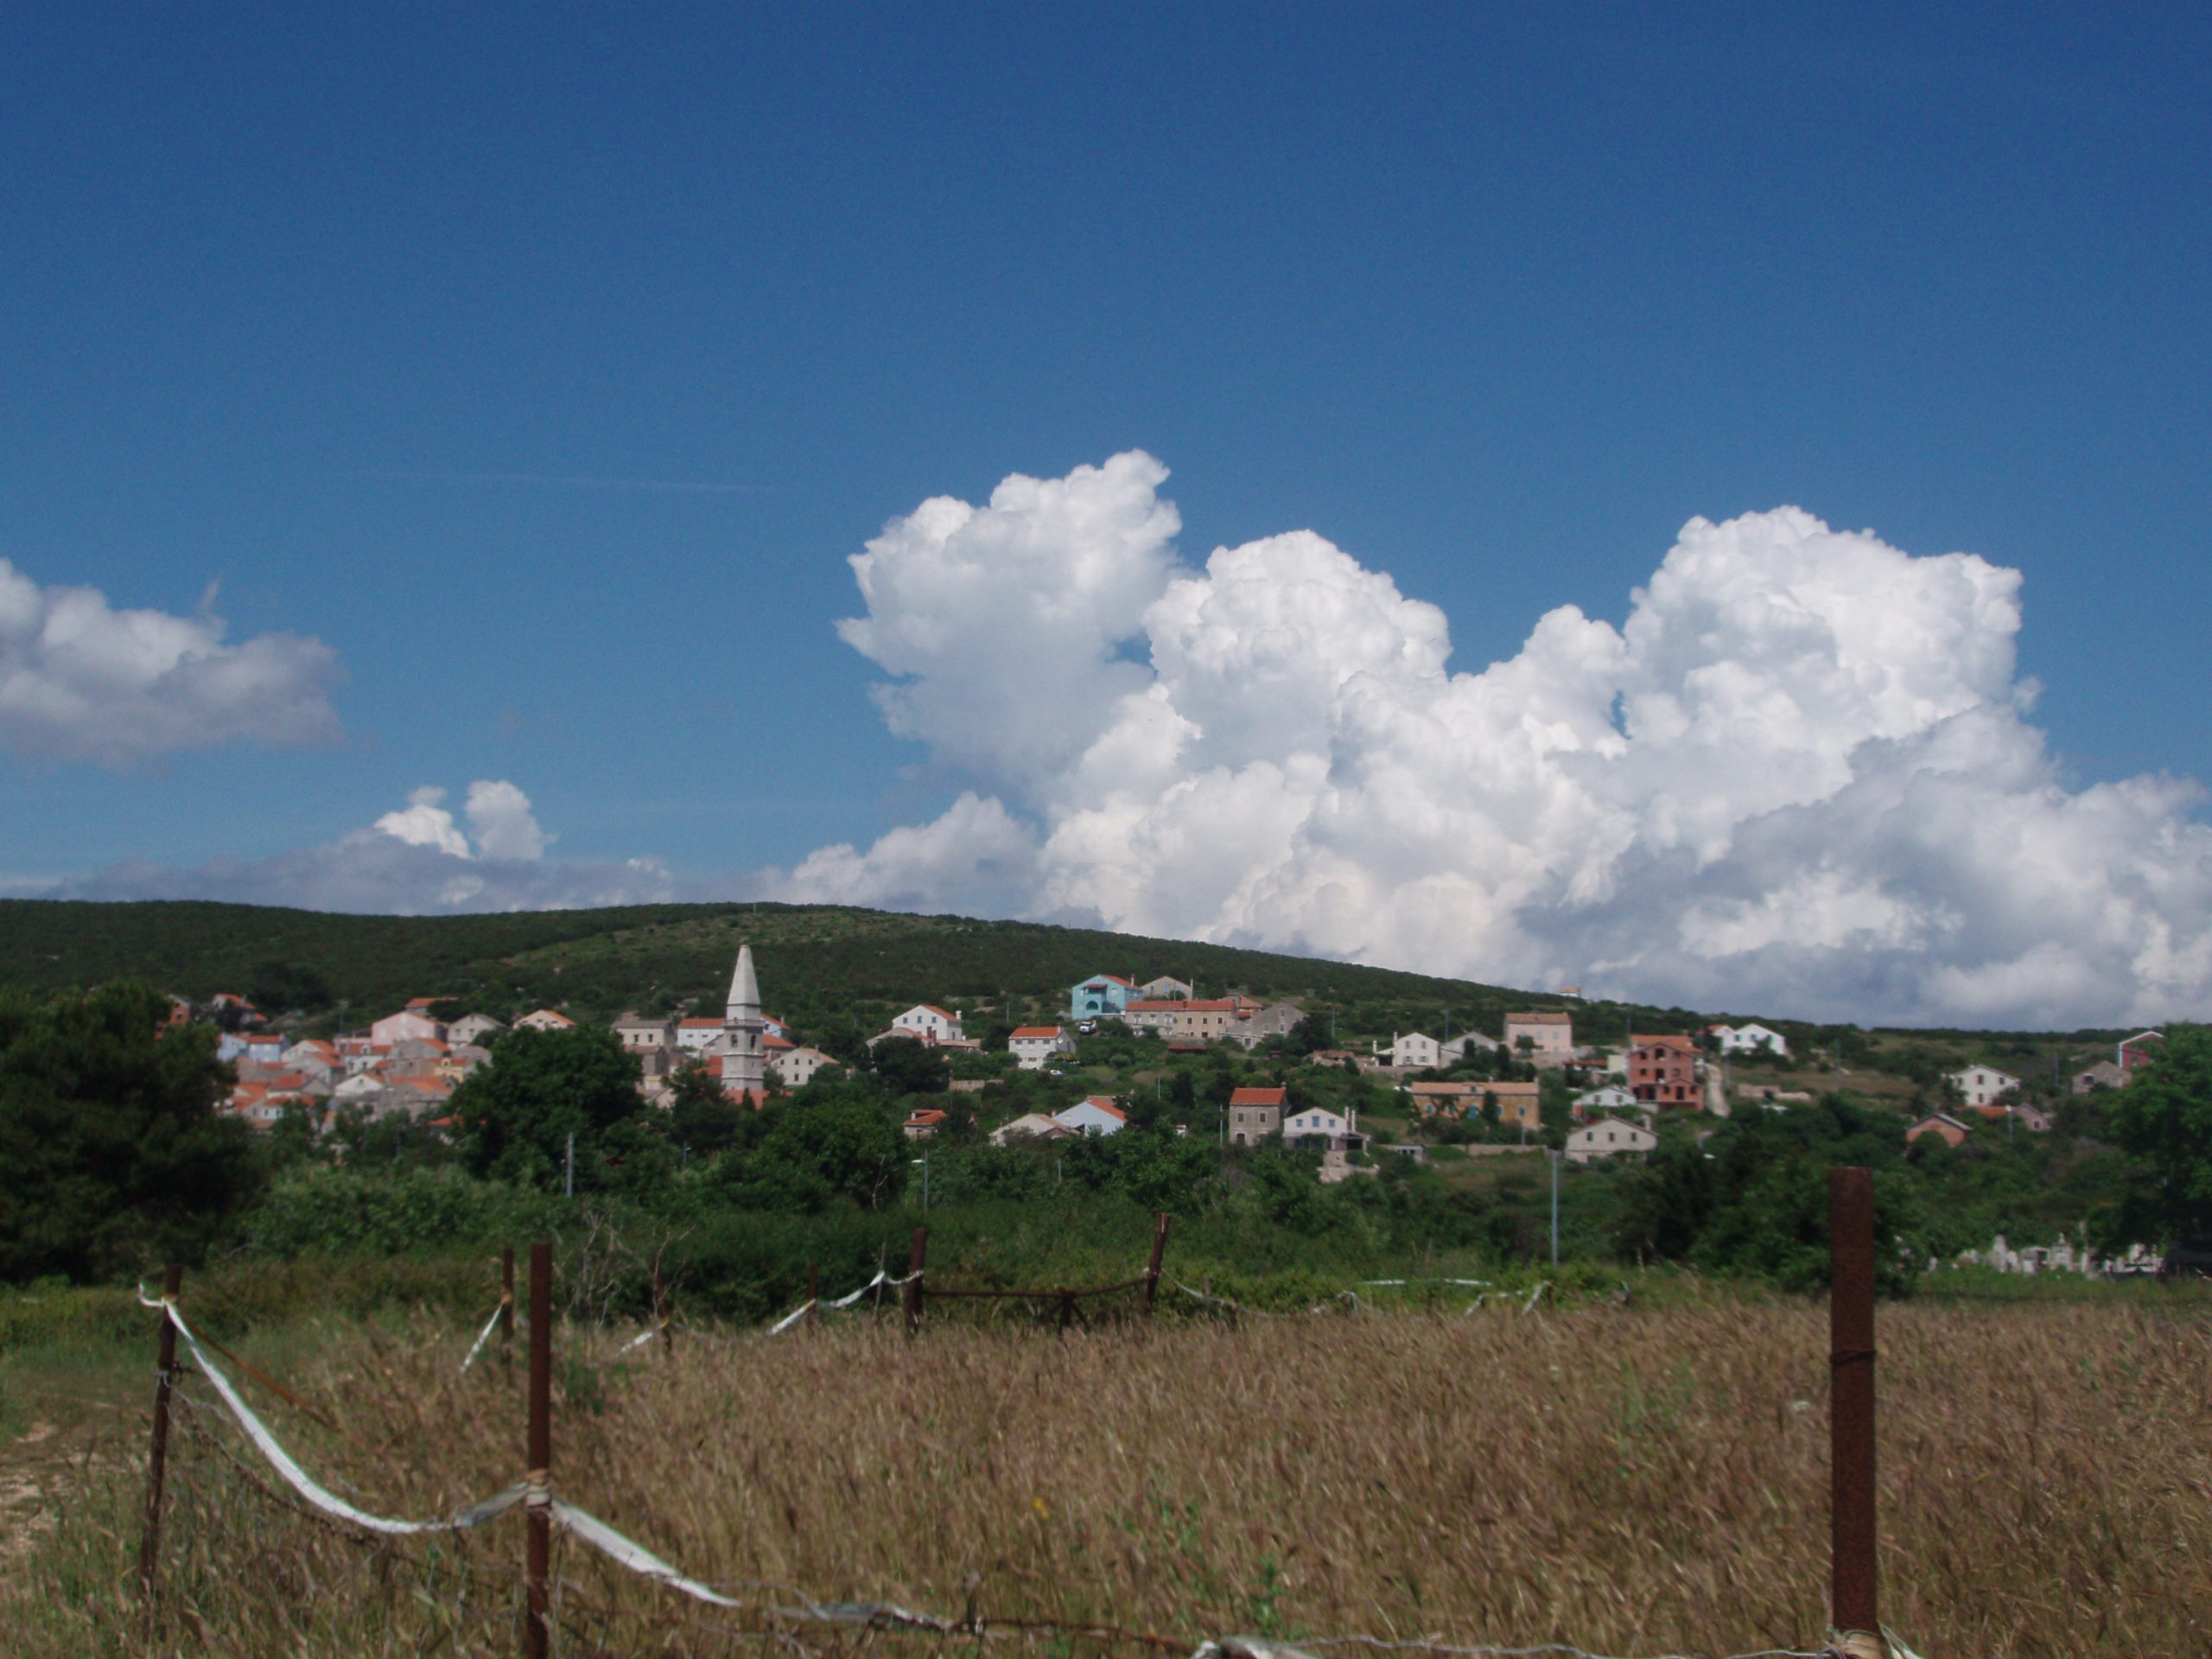 Clouds towering above the only settlement on Unije, the island that boasts a small airport.